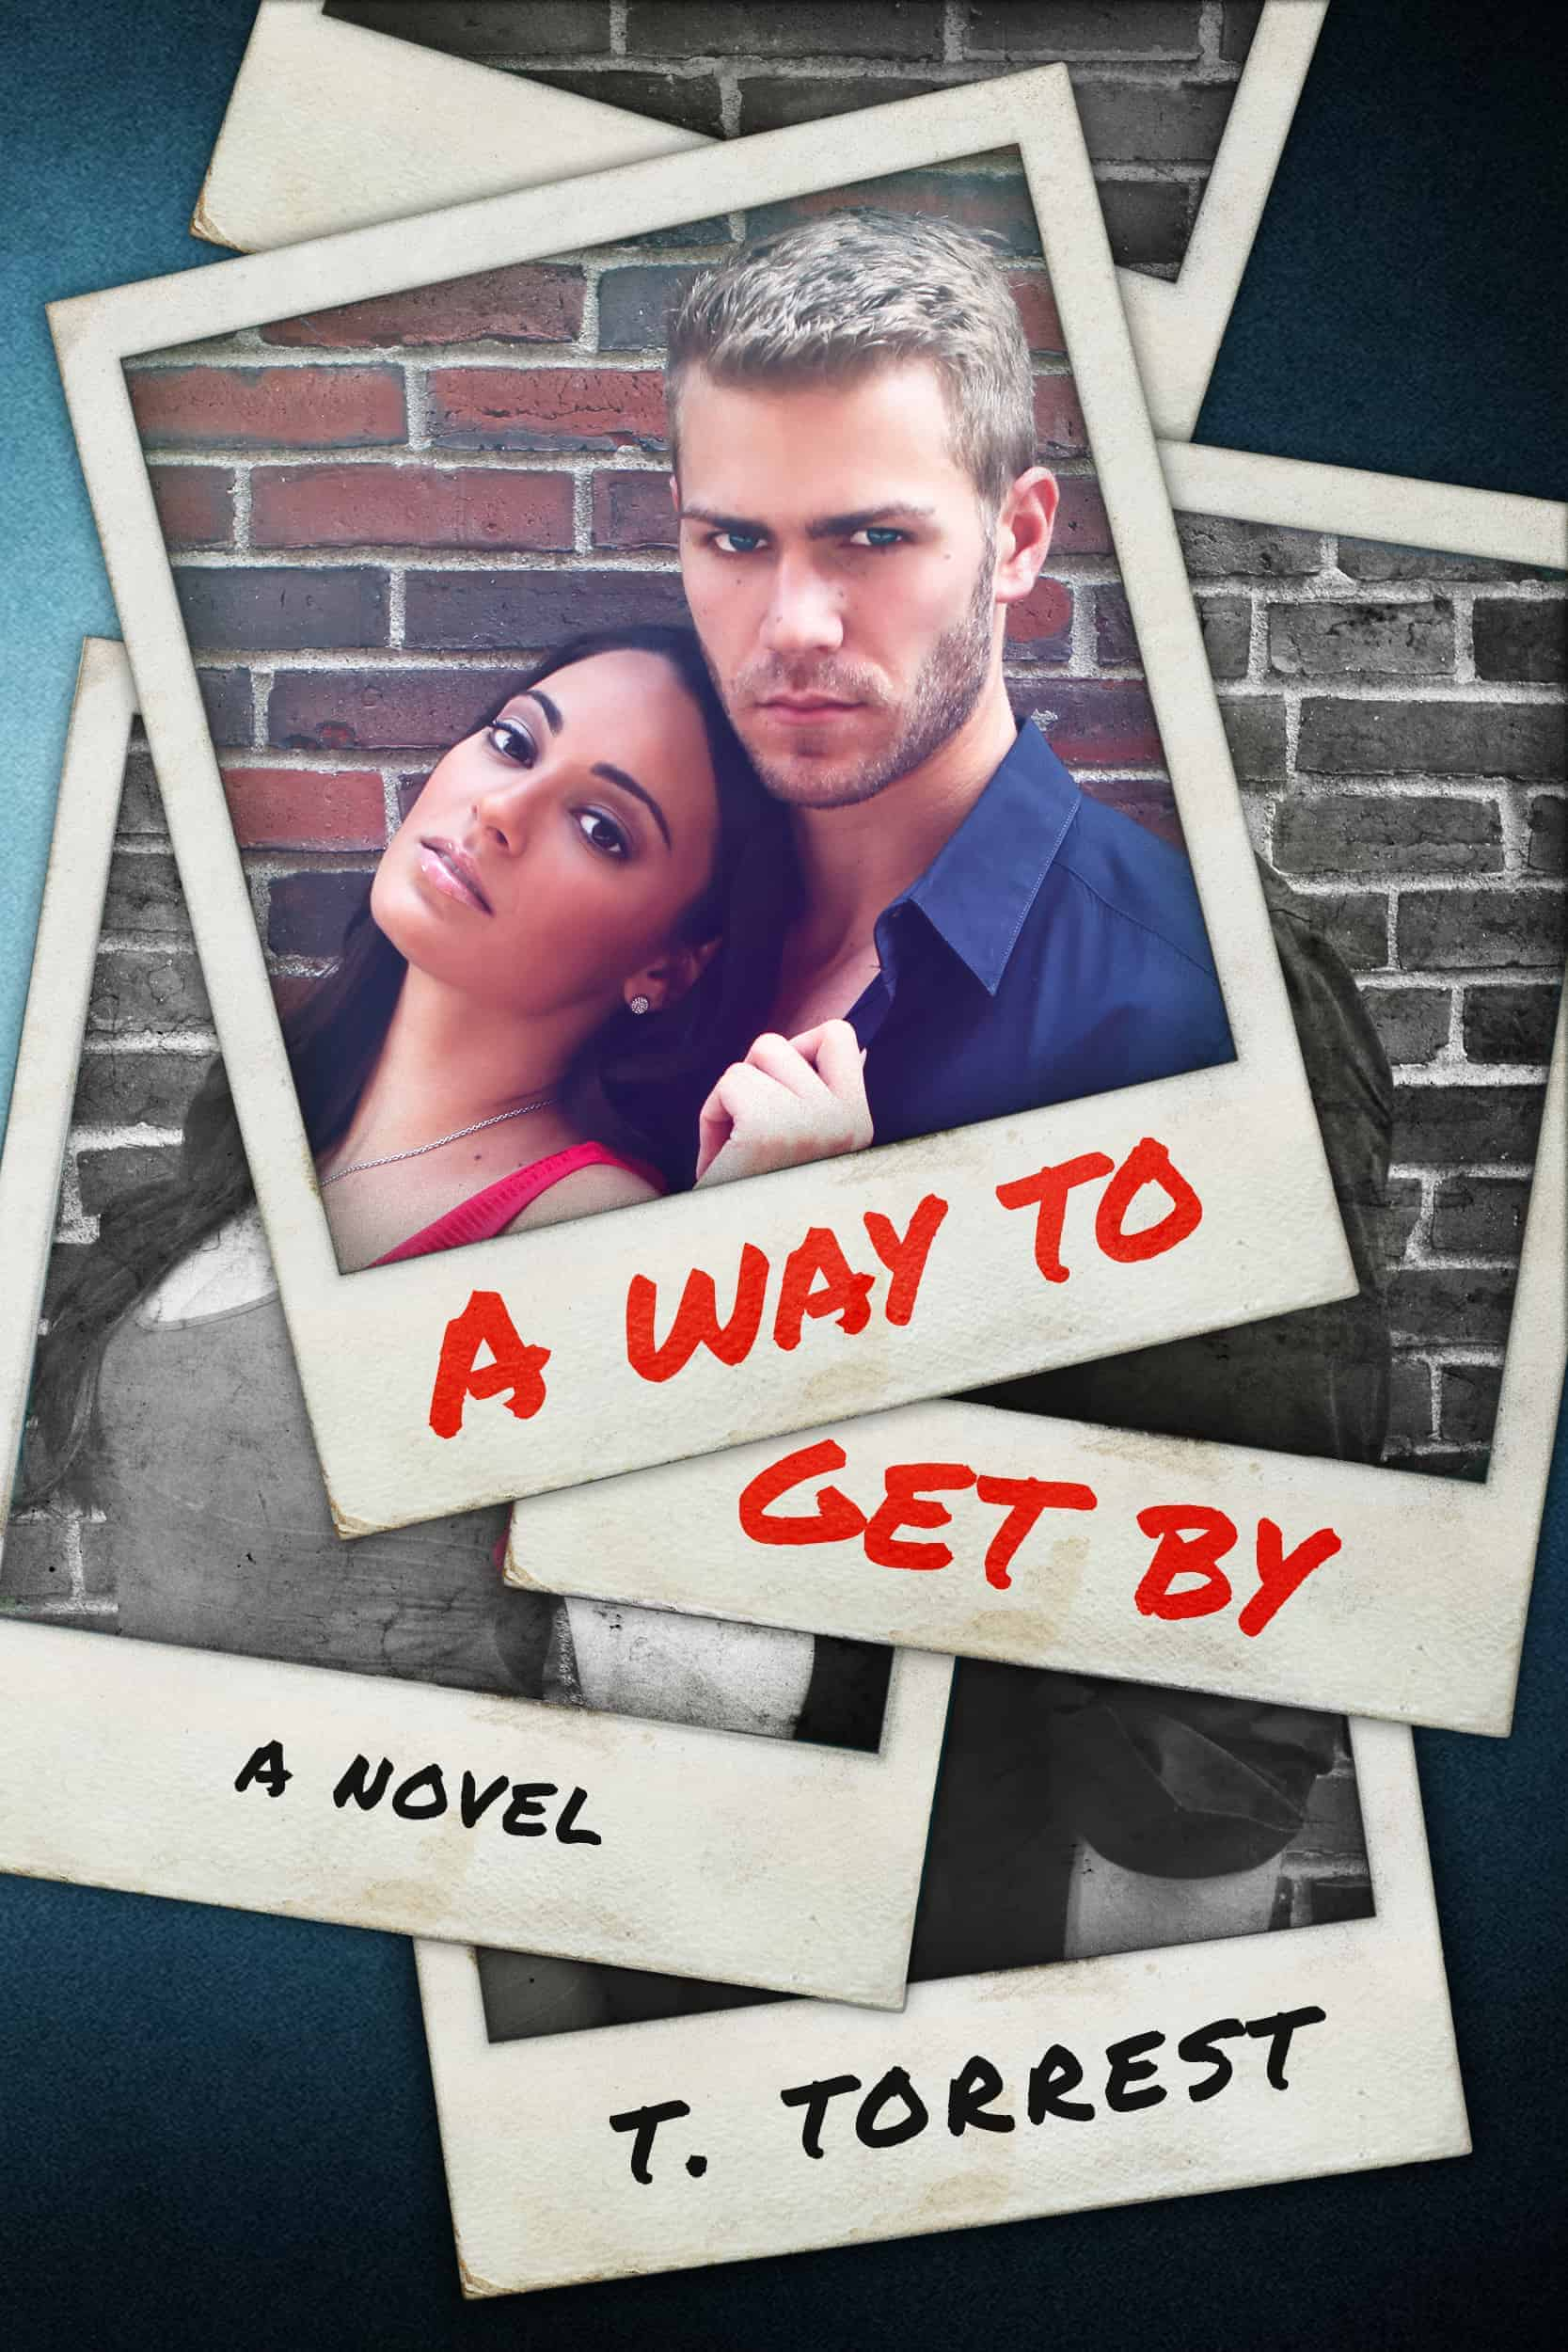 A Way to Get By by T. Torrest